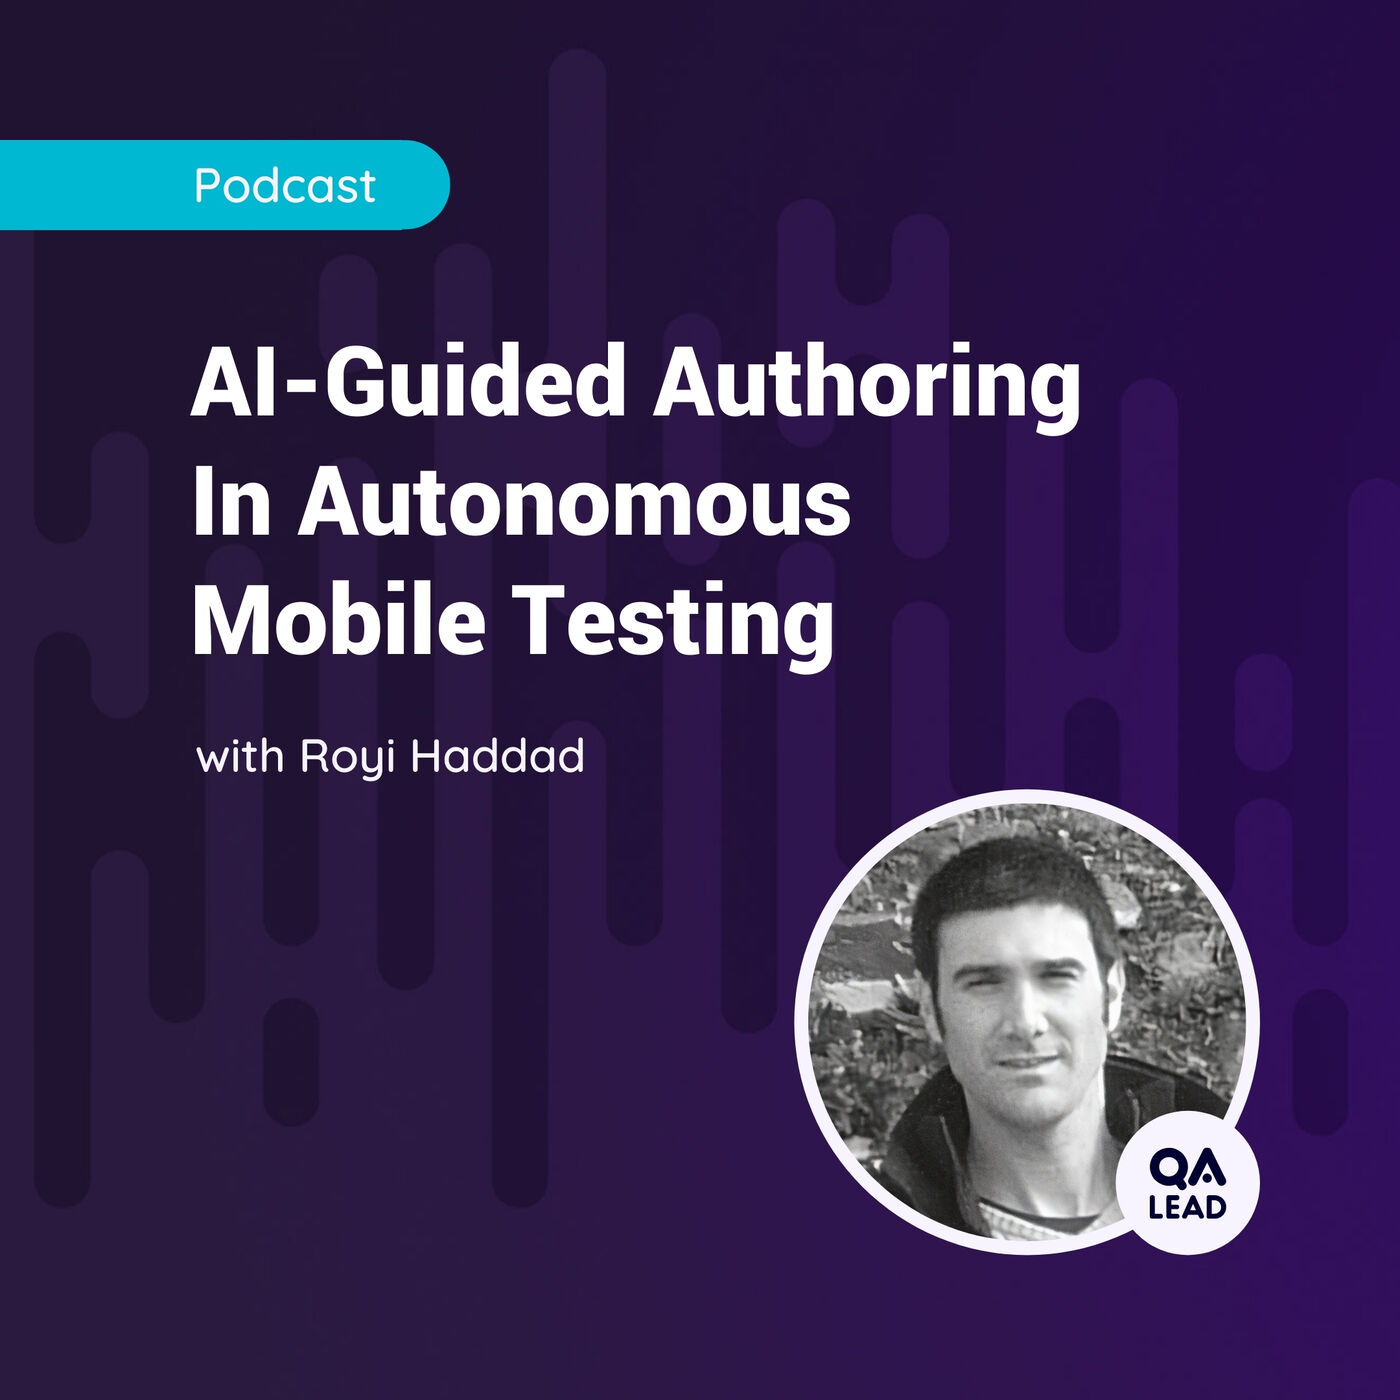 AI-Guided Authoring In Autonomous Mobile Testing (with Royi Haddad from 21Labs)